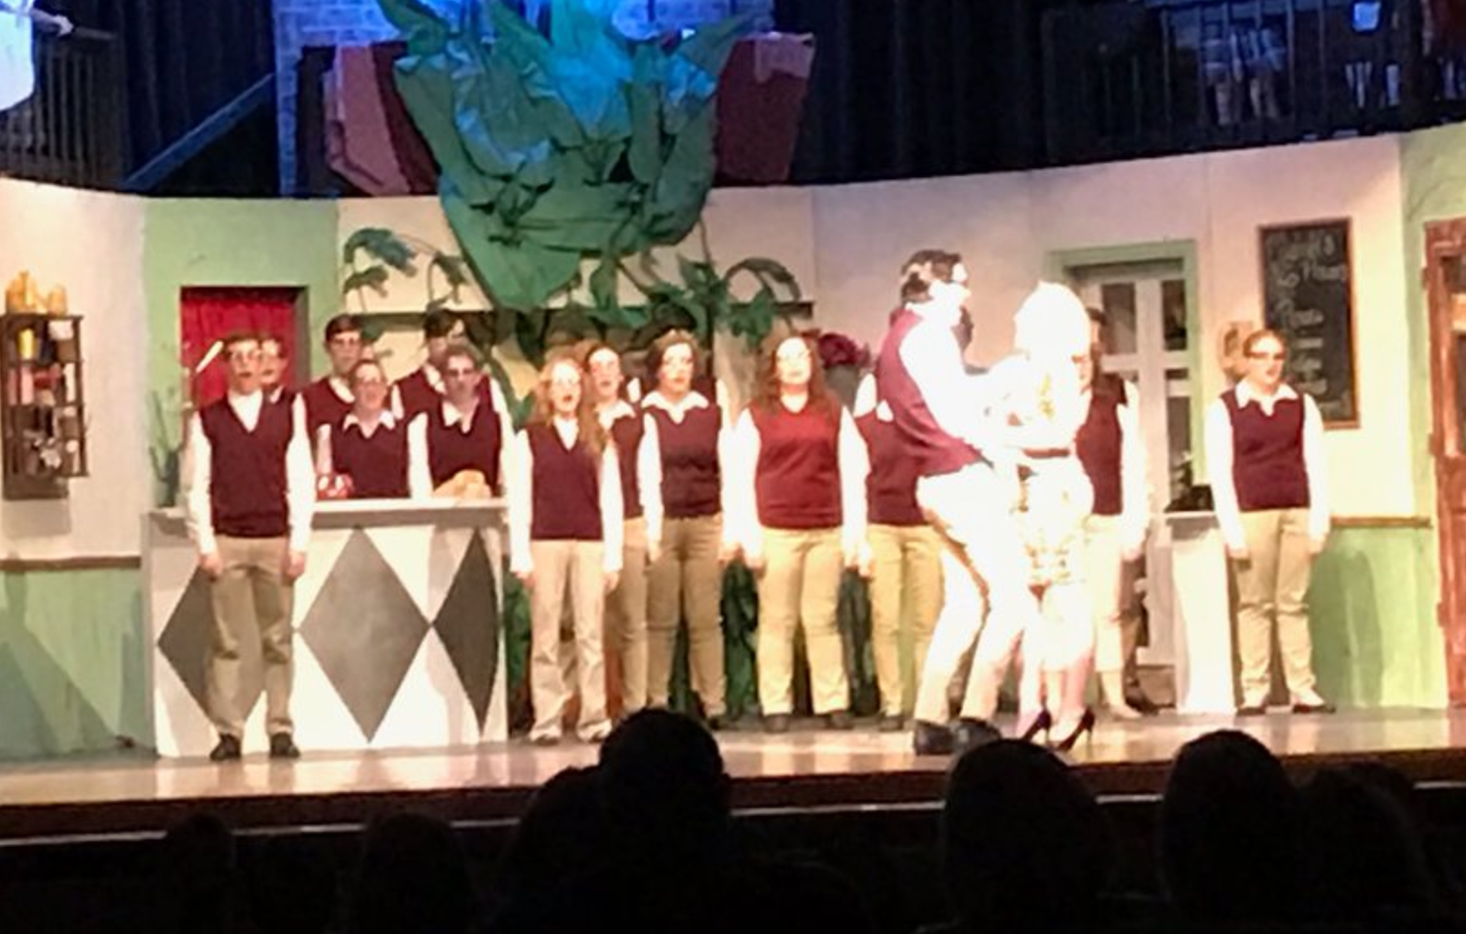 LITTLE SHOP OF HORRORS DEBUTS TOMORROW NIGHT (7:00PM)